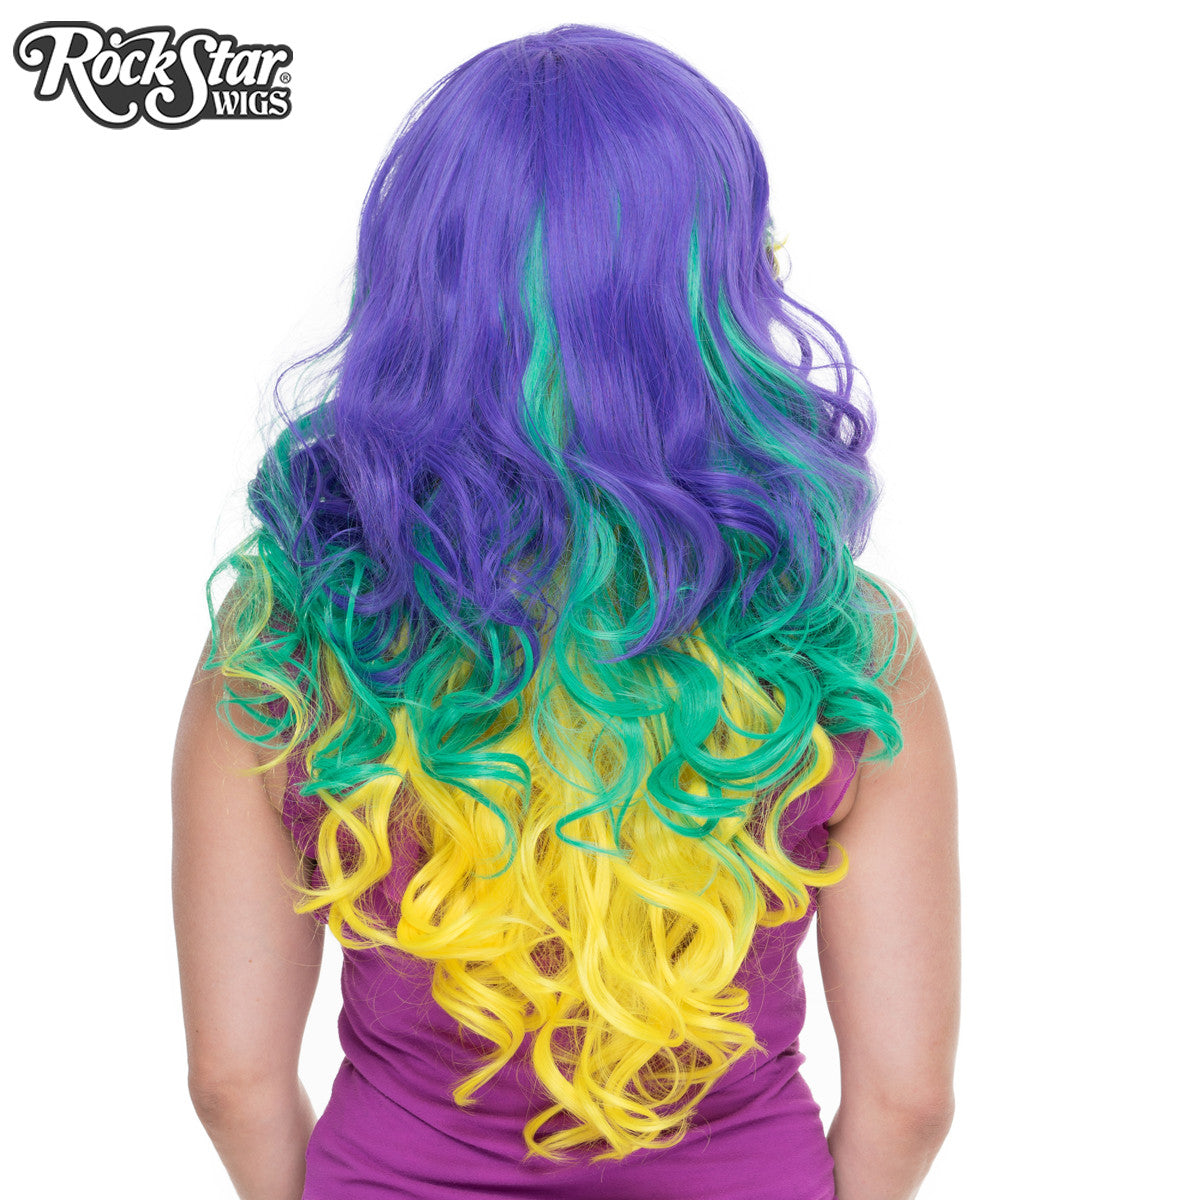 RockStar Wigs® <br> Triflect™ Collection -Mardi Gras -00832